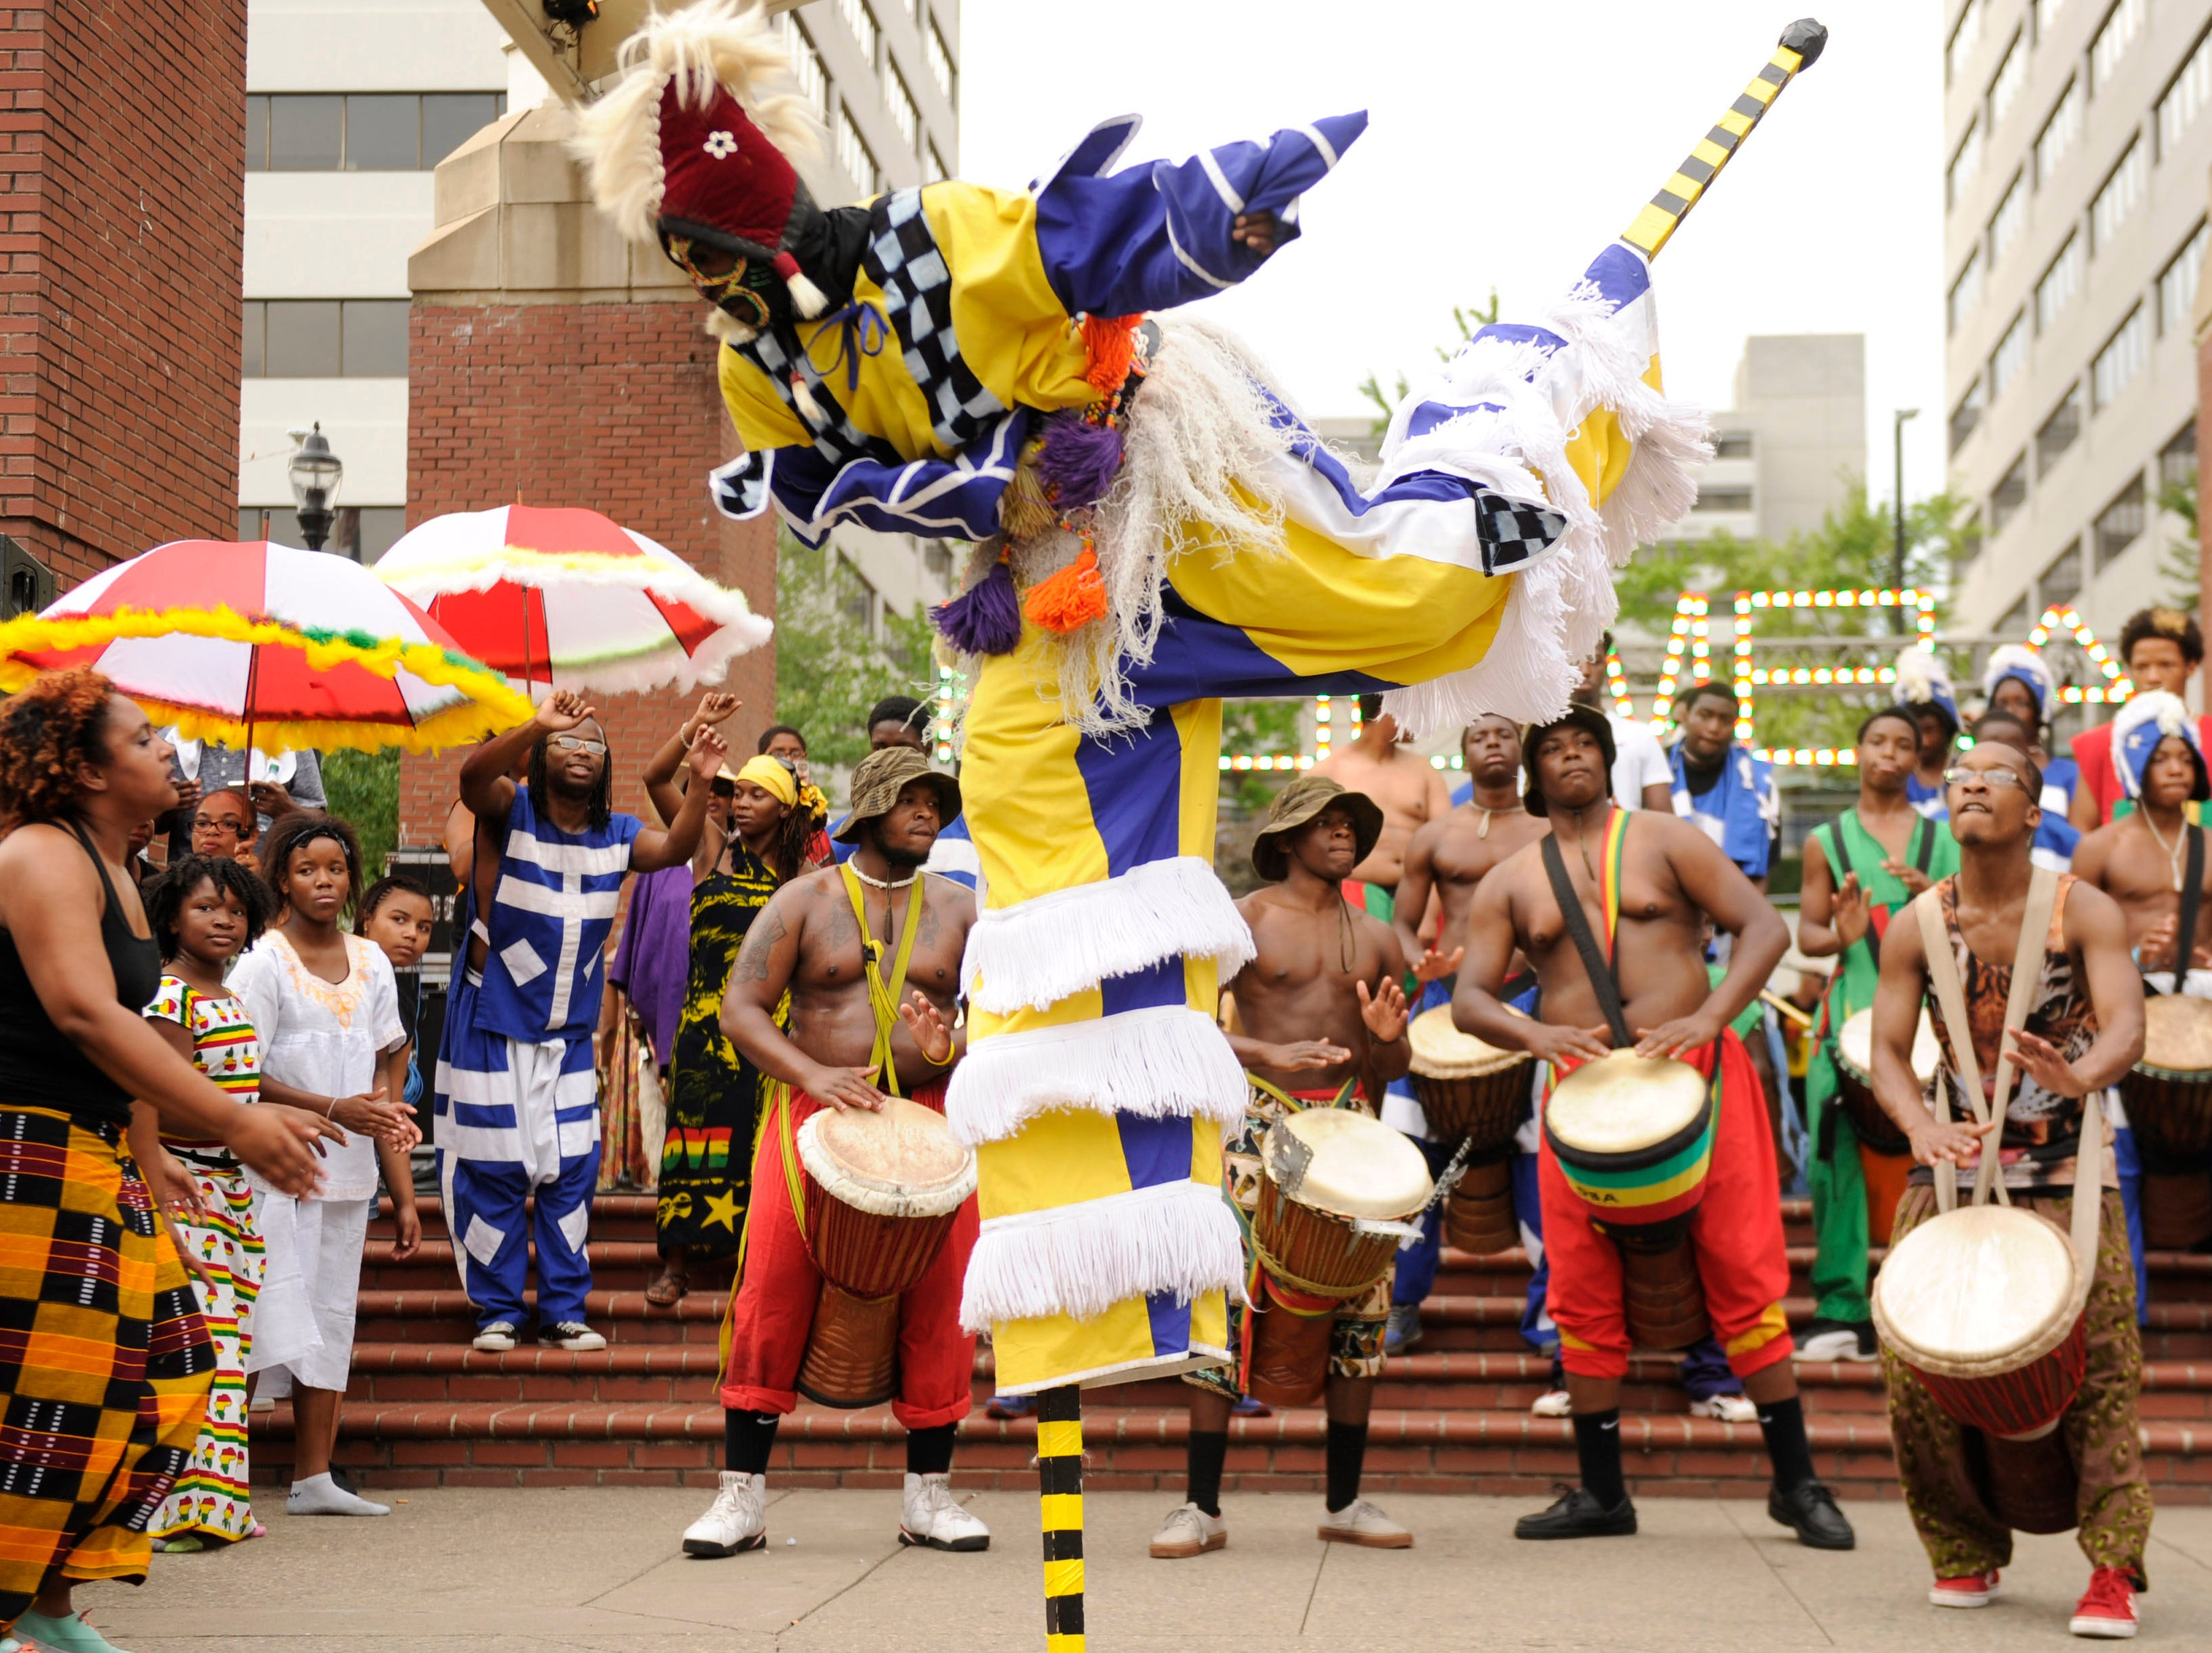 A stilt-walker balances on one leg during a performance with Kuumba Kamp drummers in Knoxville's Market Square on Friday, June 20, 2014. (ADAM LAU/NEWS SENTINEL)